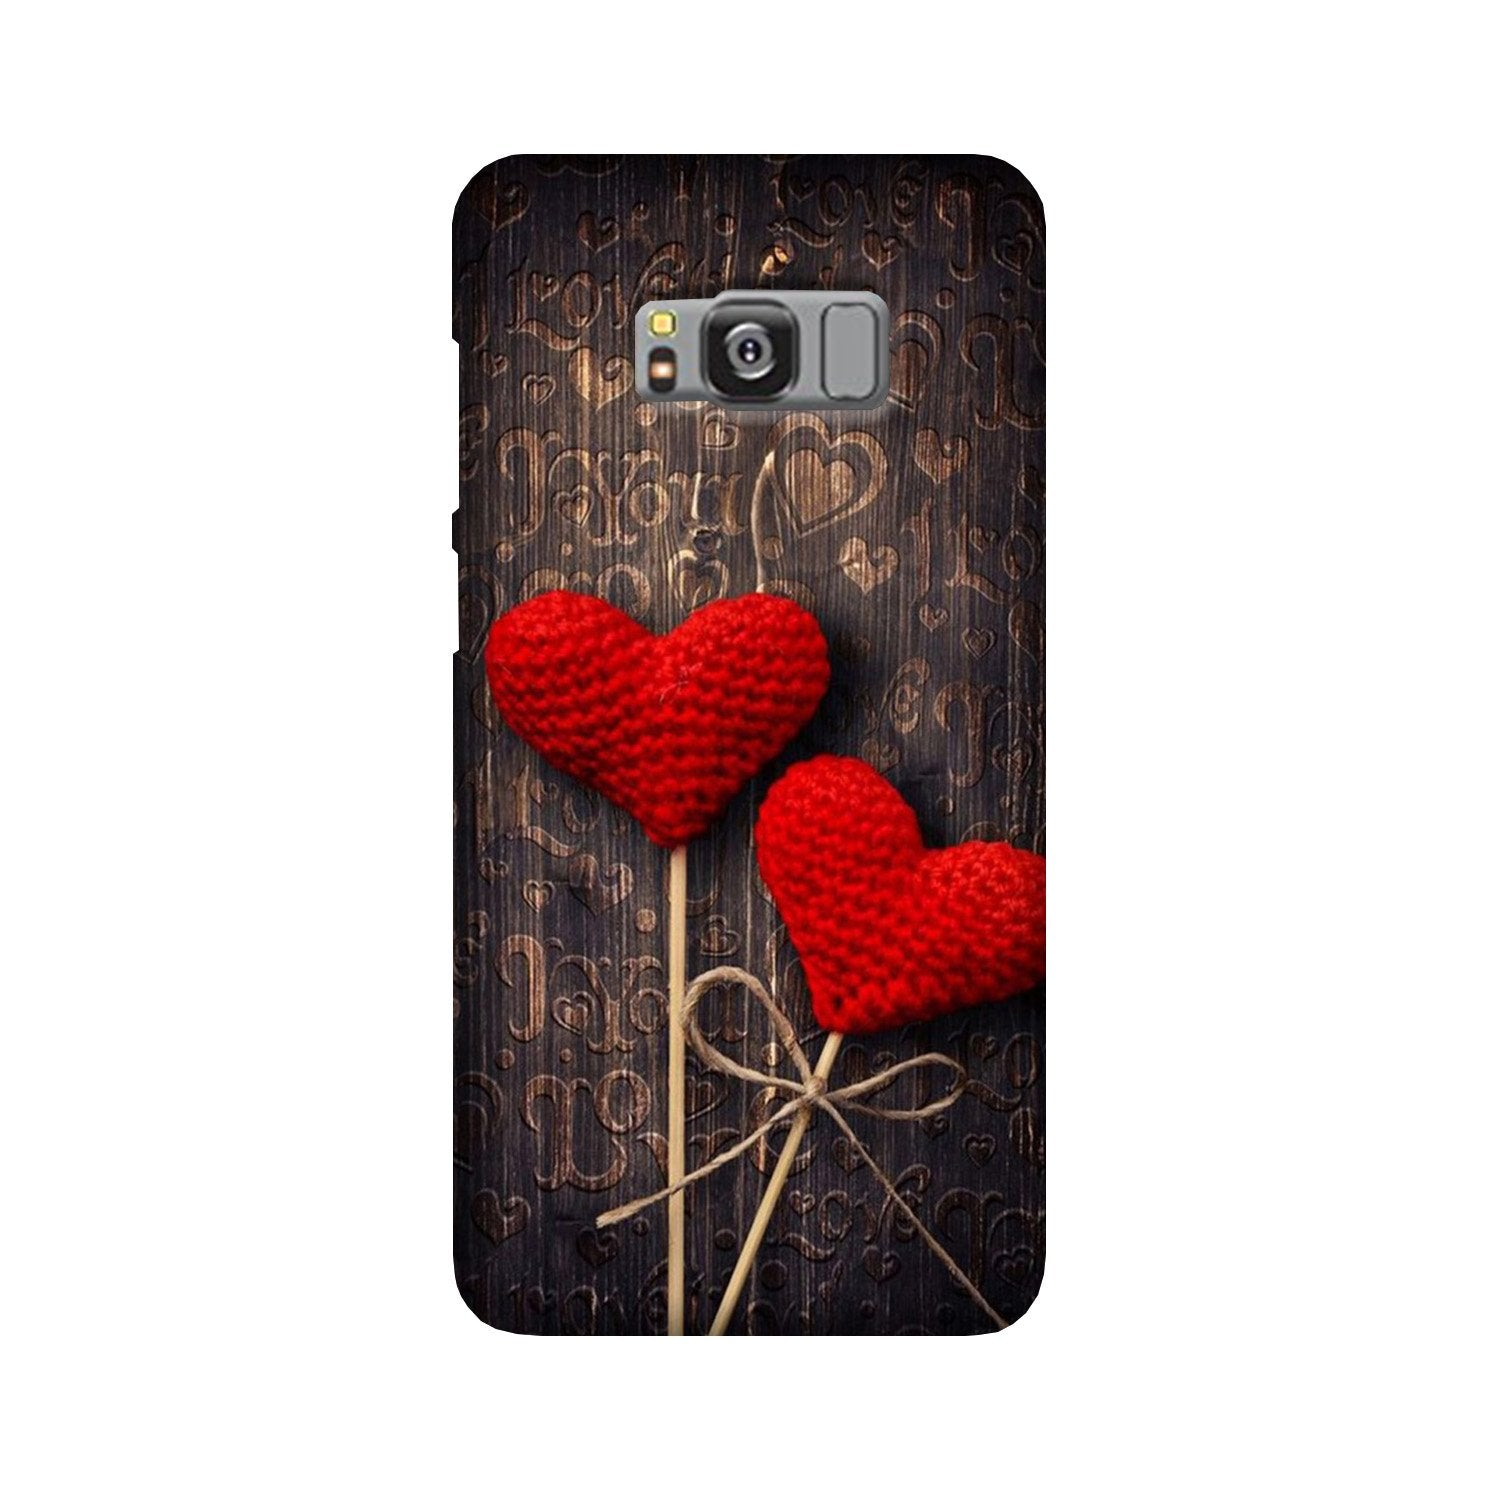 Red Hearts Case for Galaxy S8 Plus